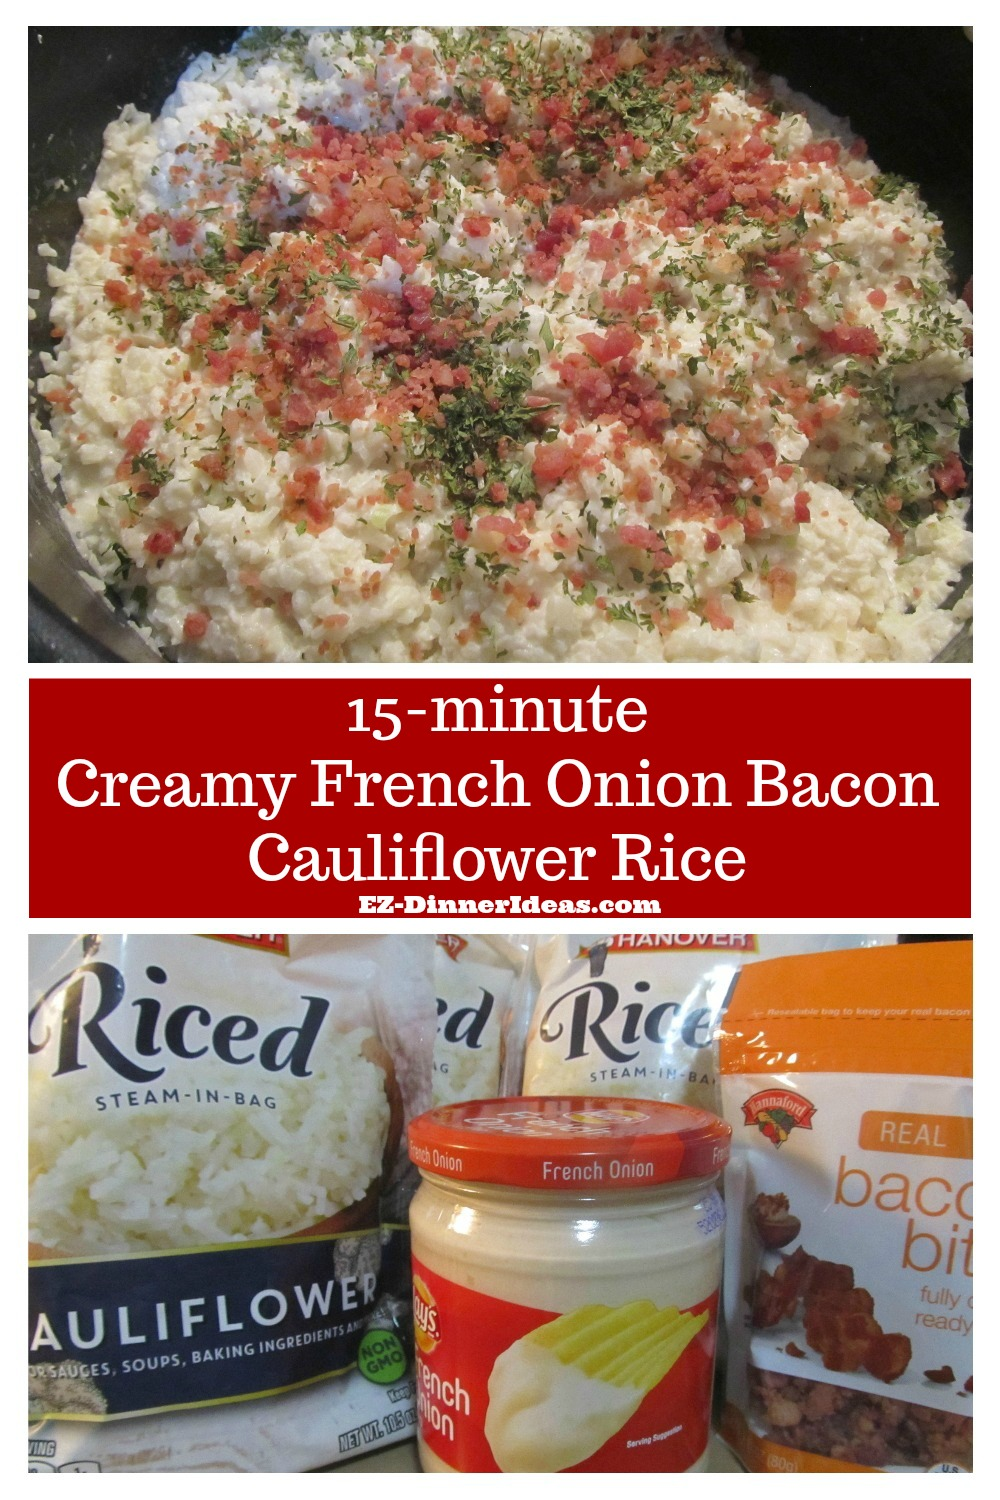 Recipe cauliflower rice only takes 3 store-bought ingredients and 15 minutes to make a quick, easy and yummy meal.